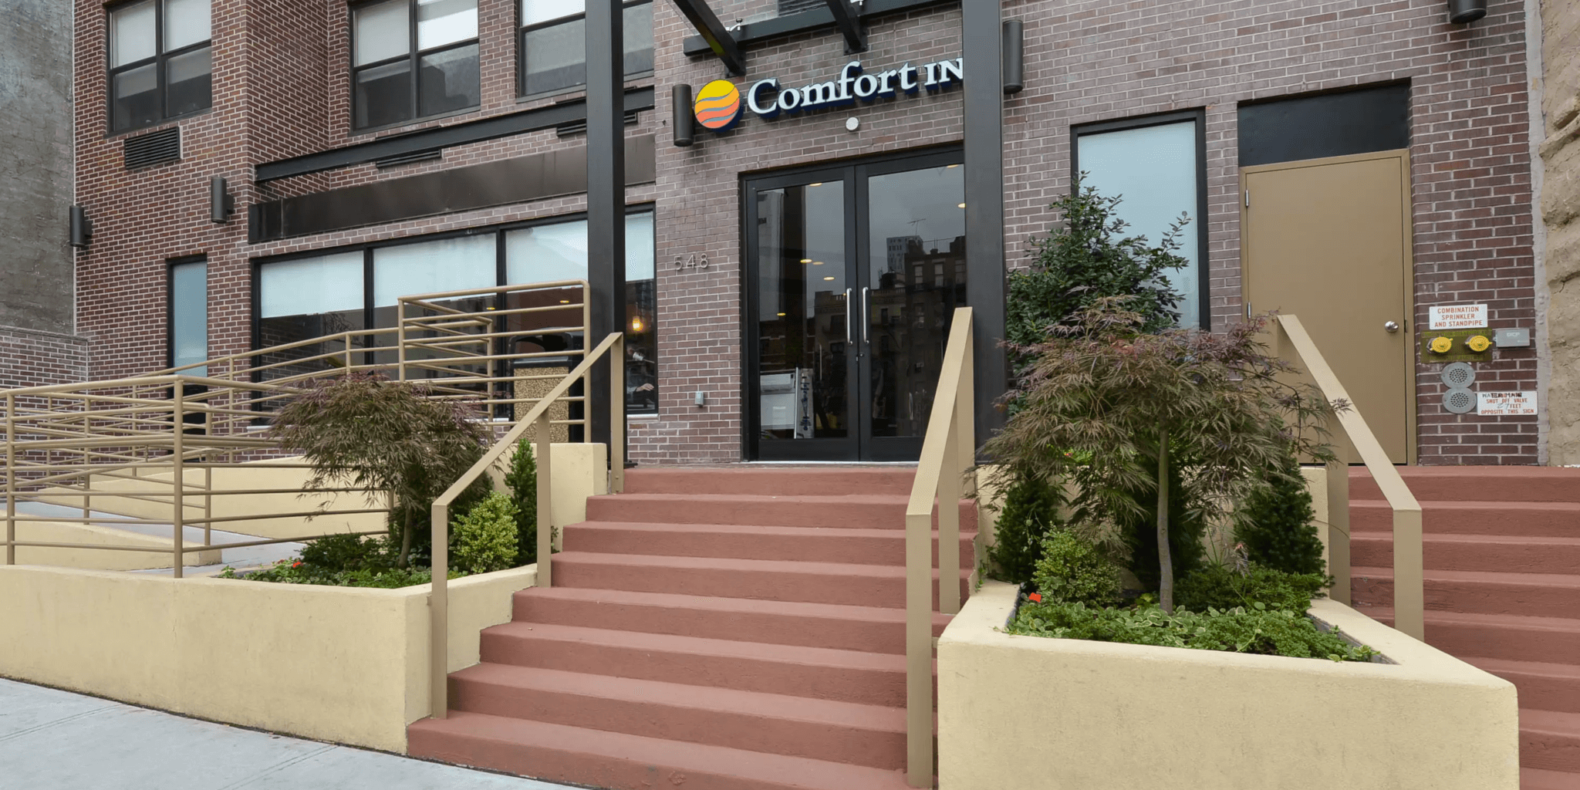 Comfort Inn Midtown West exterior entrance daytime